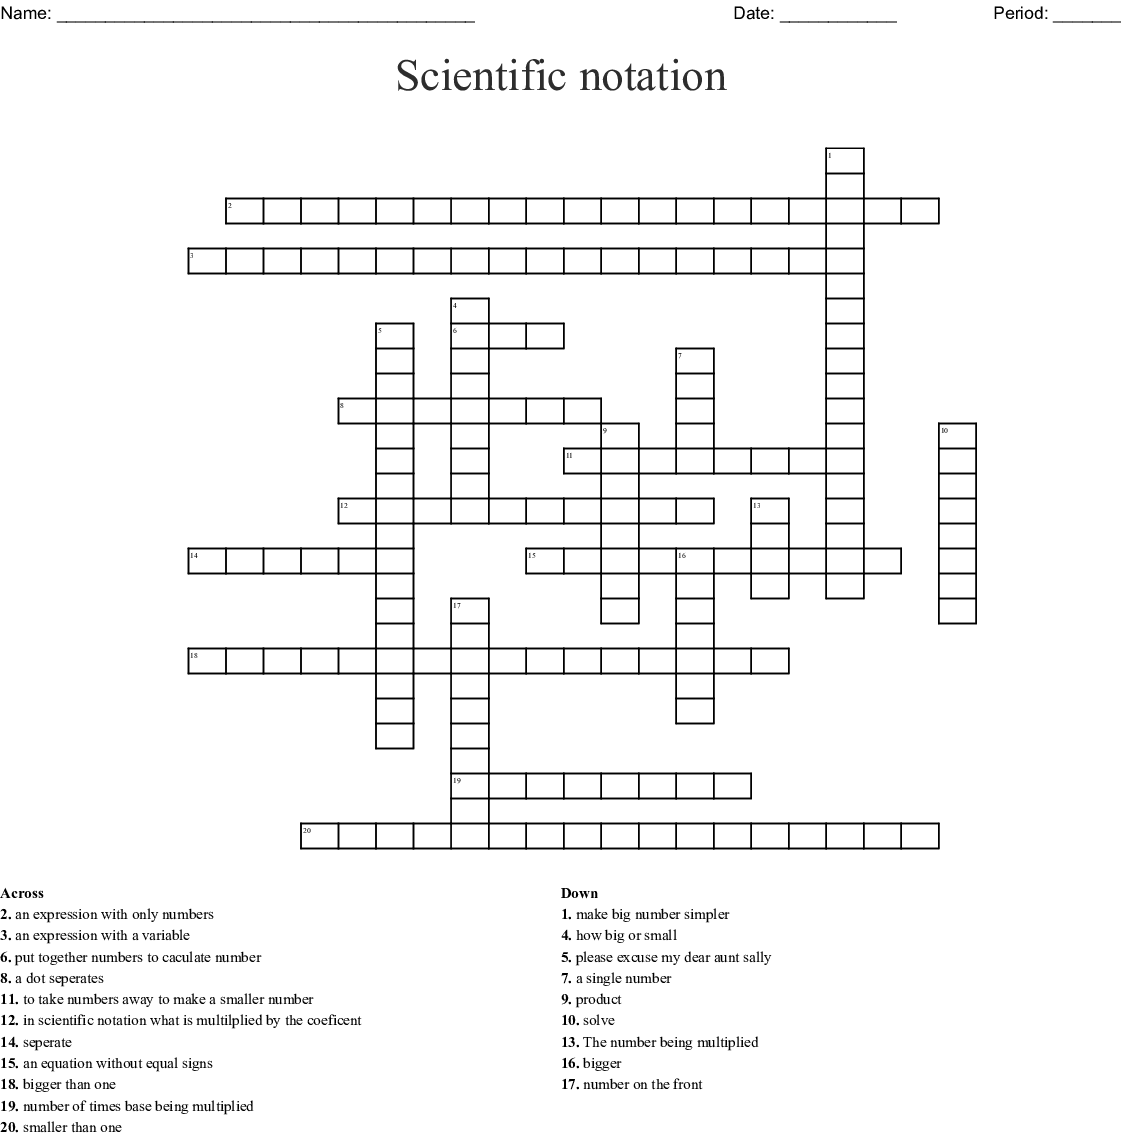 Scientific Notation Word Search